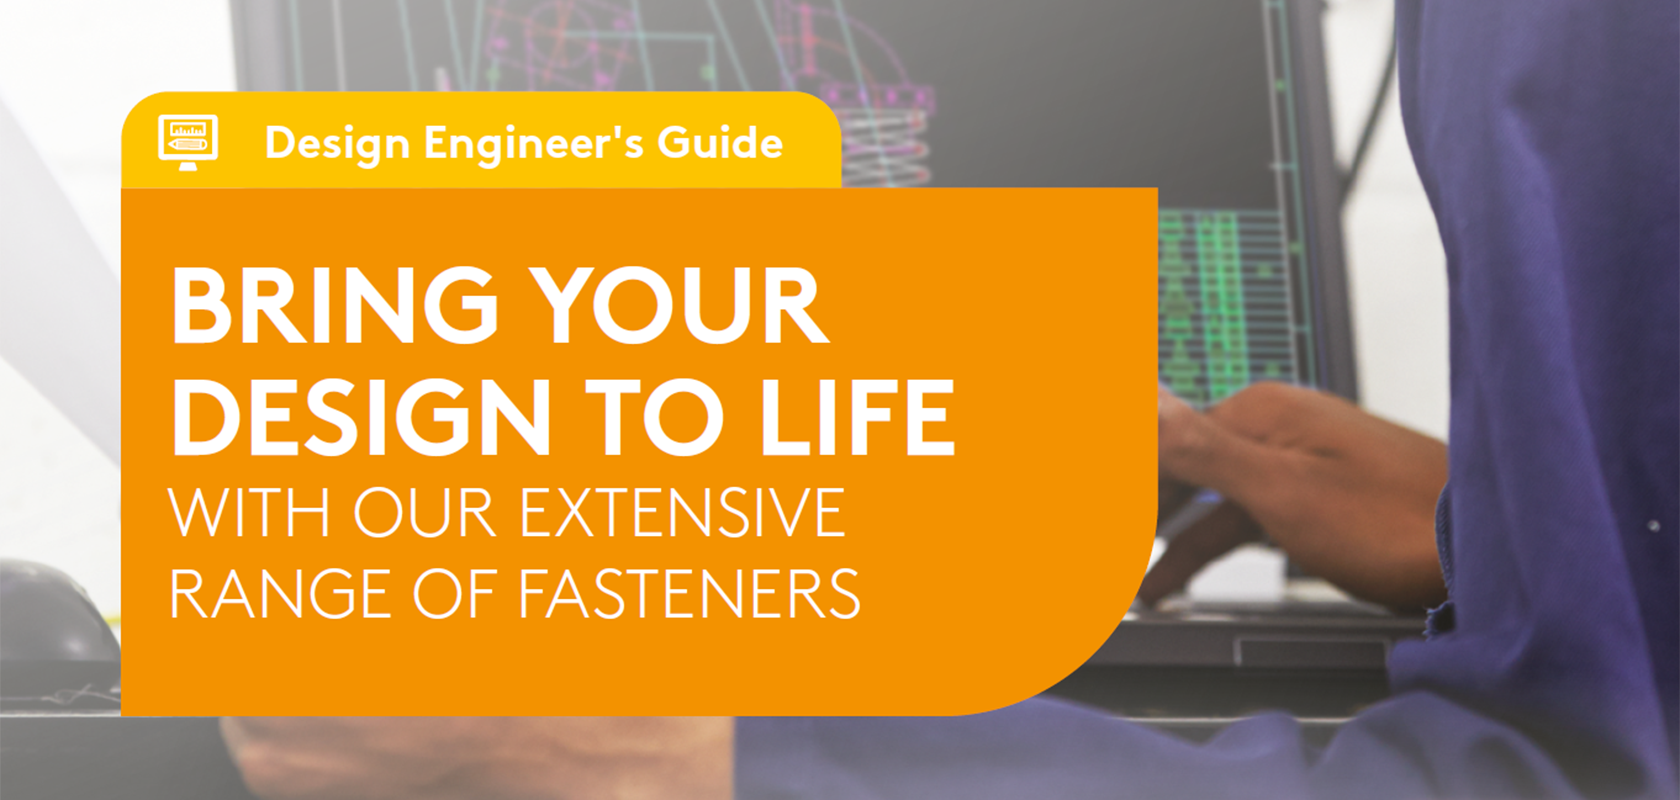 Design Engineer's Application Guide Fasteners